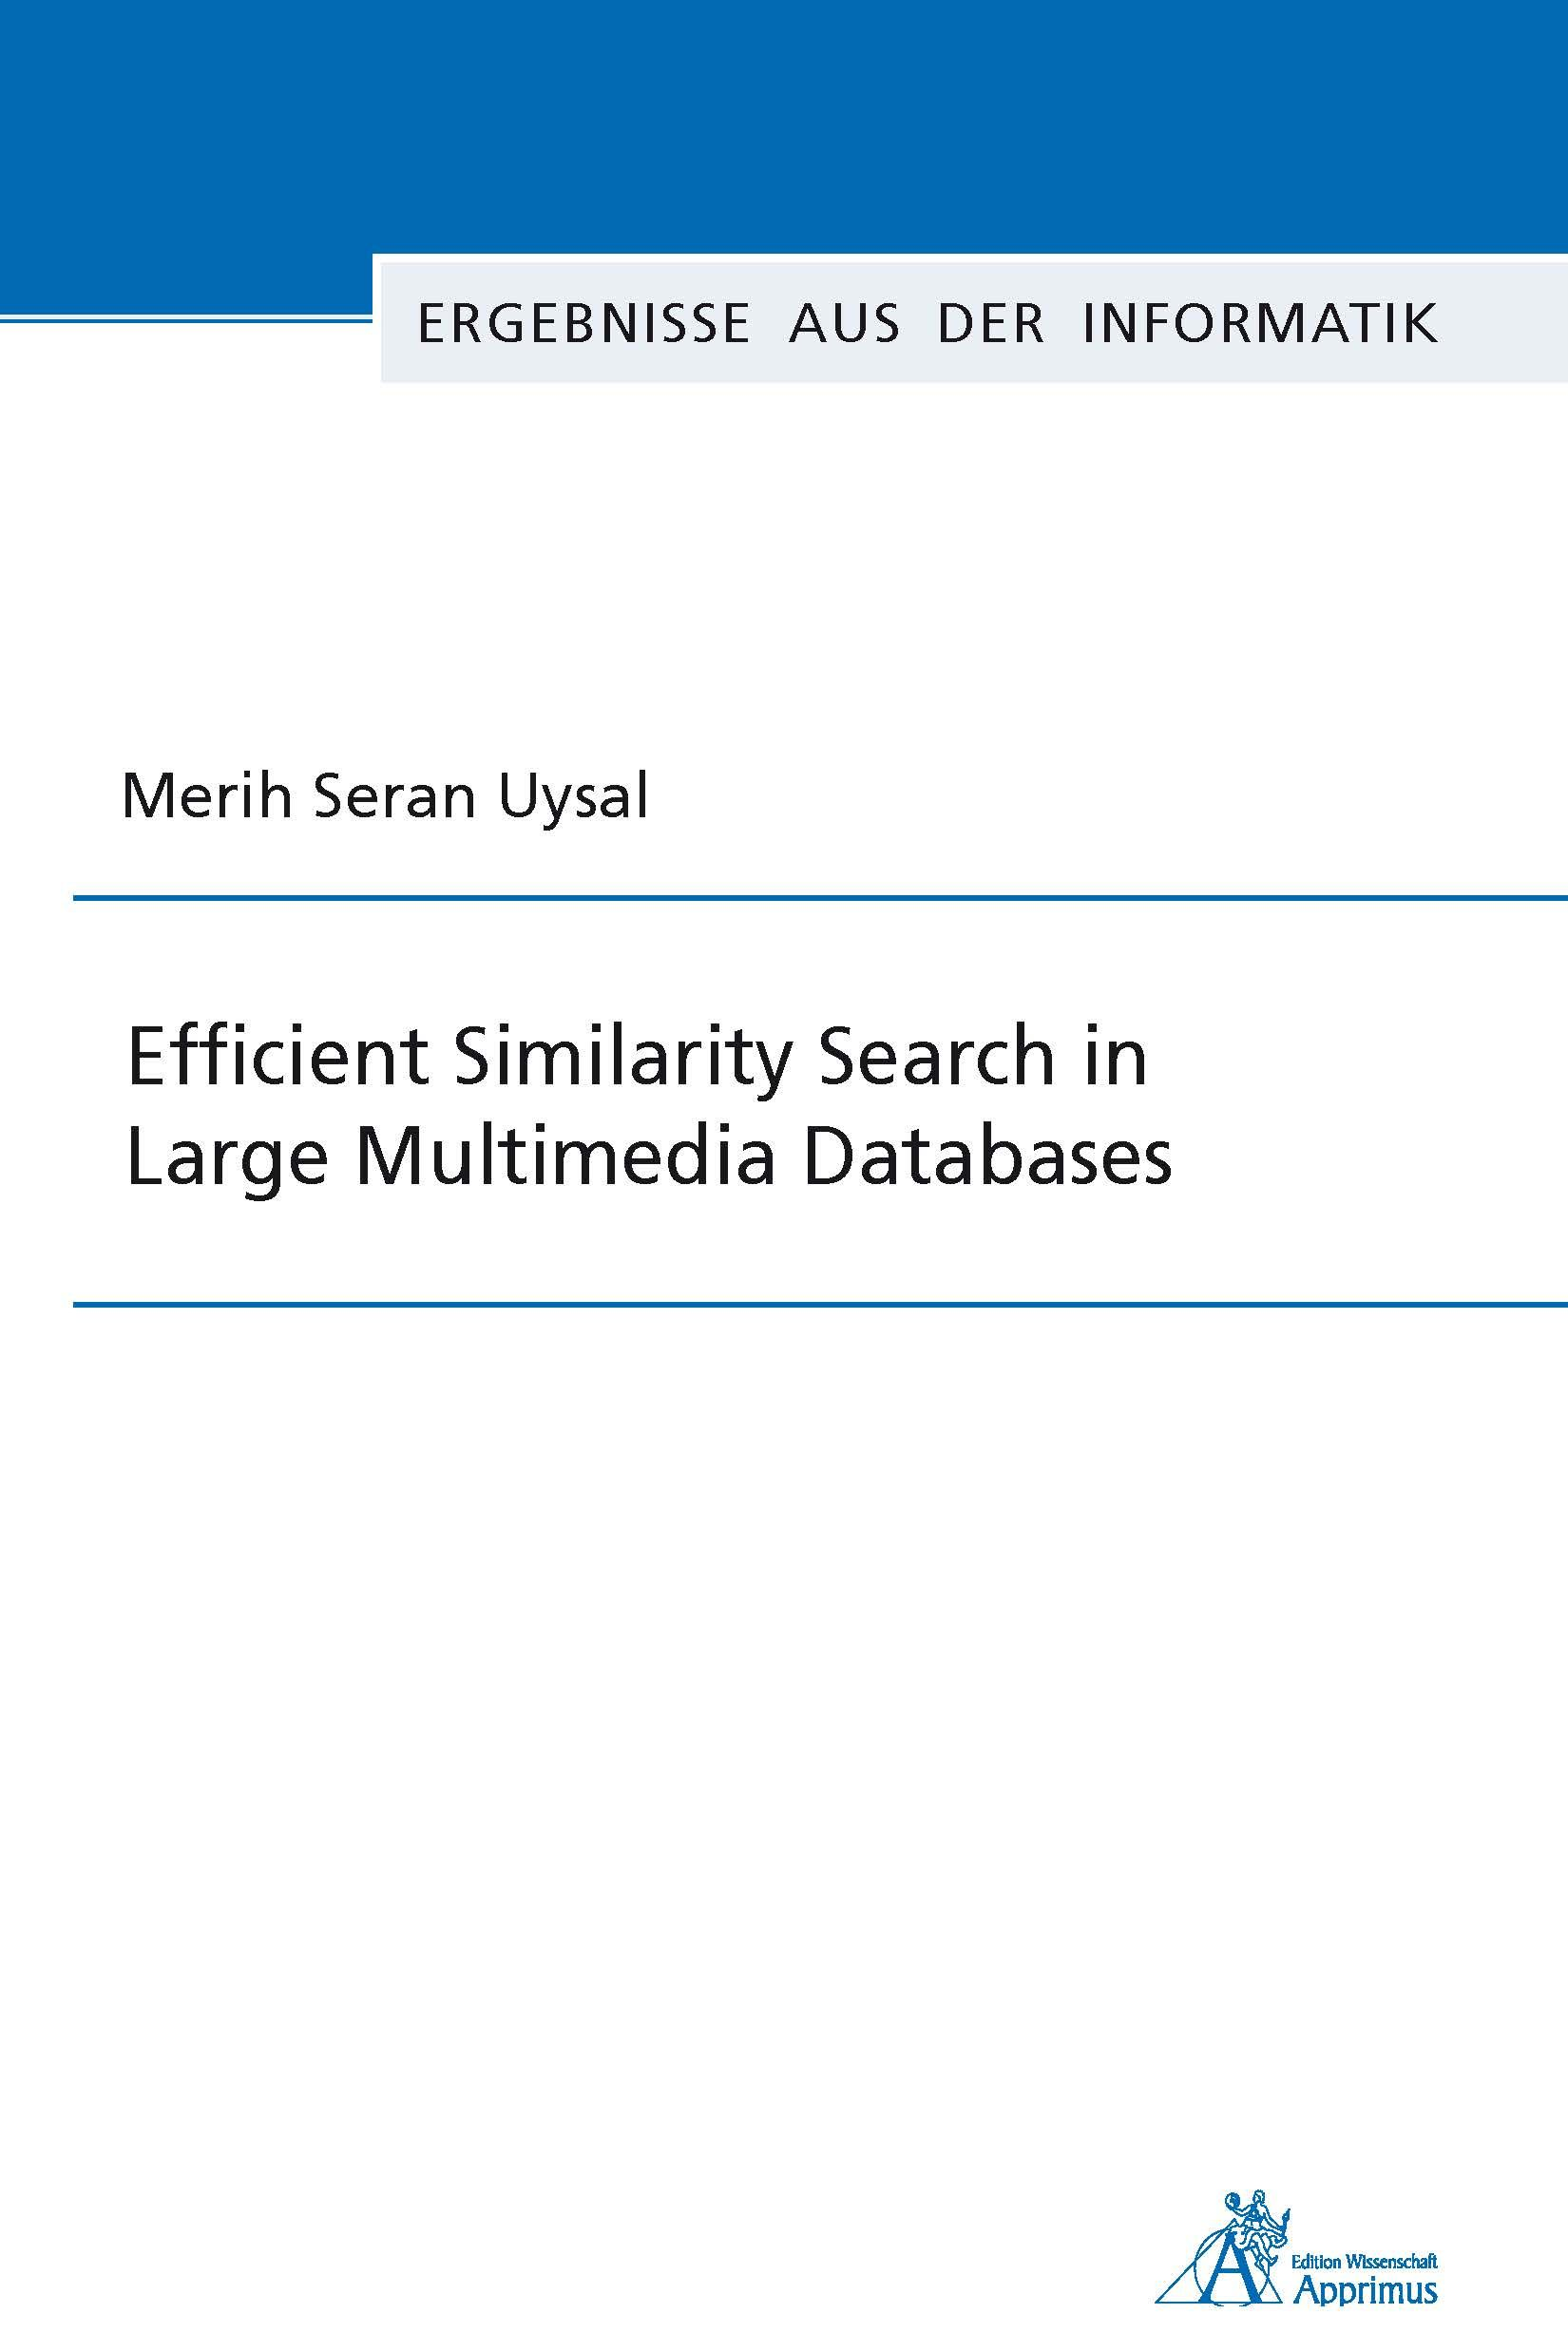 Efficient Similarity Search in Large Multimedia Databases